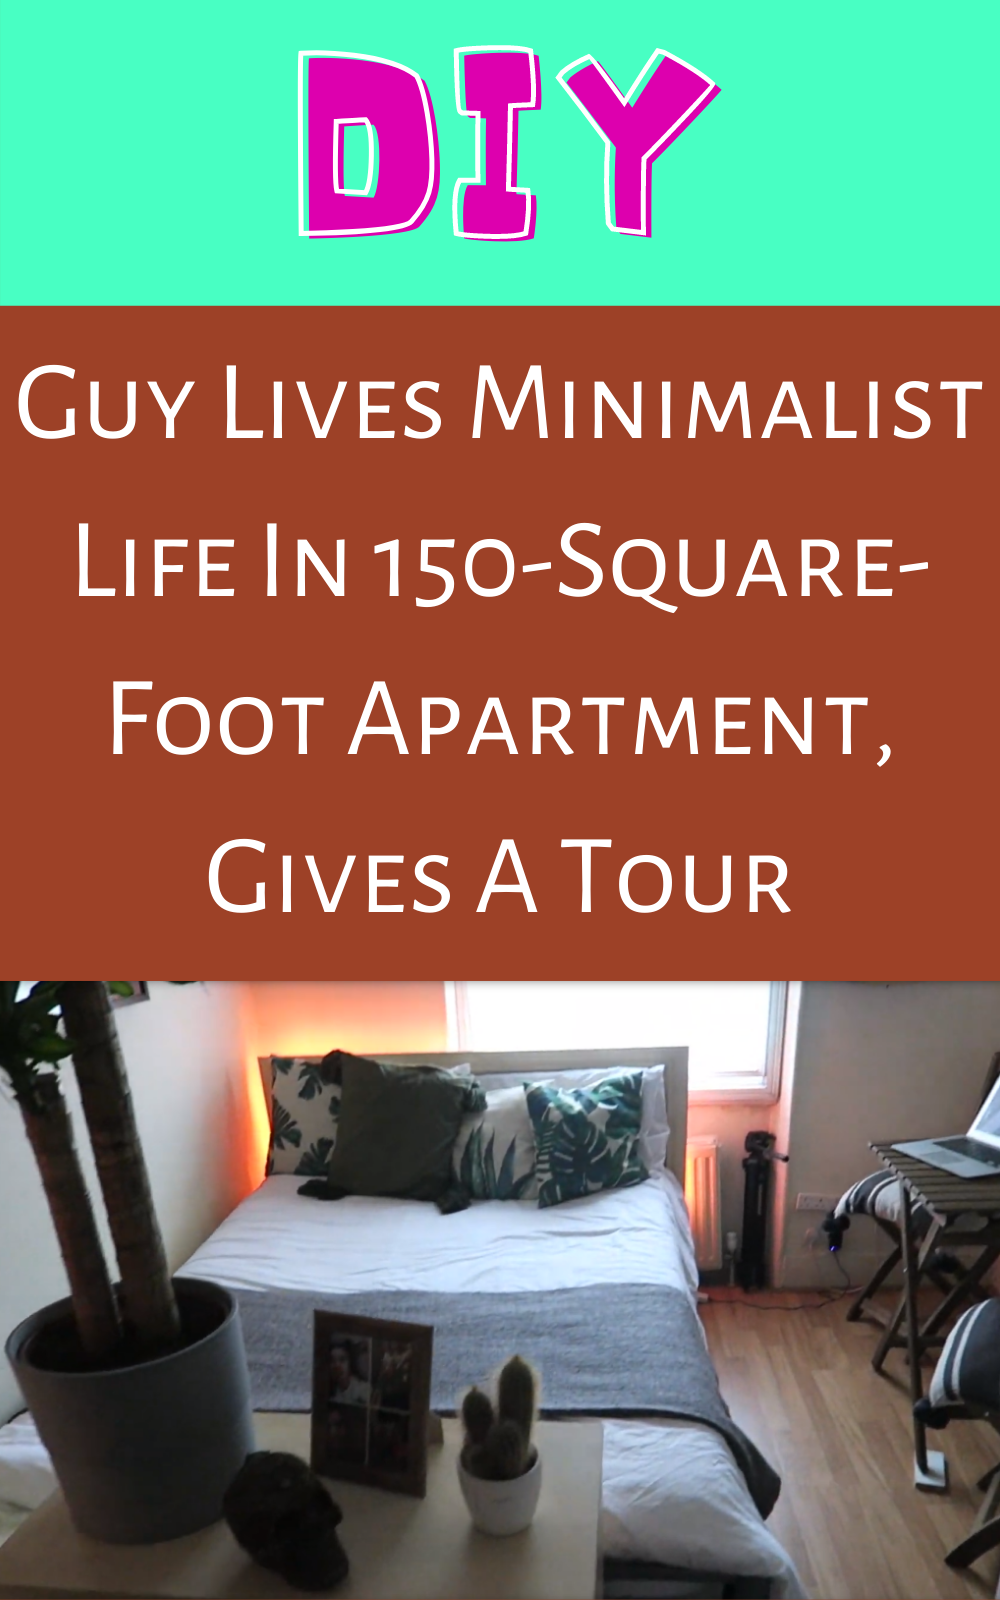 Guy Lives Minimalist Life In 150-Square-Foot Apartment, Gives A Tour